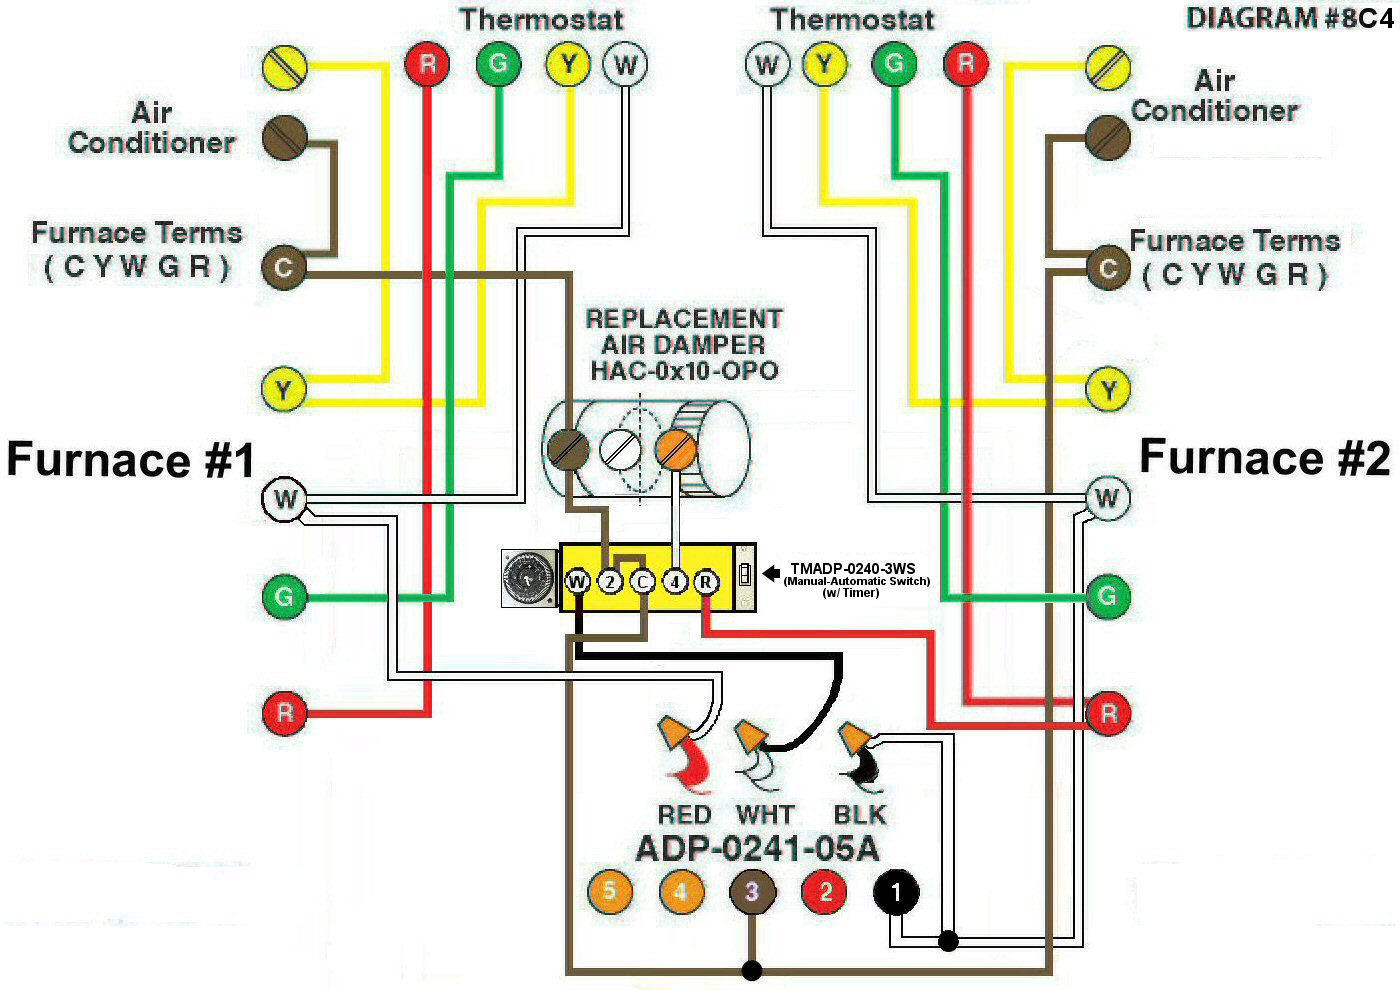 Rheem Oil Furnace Wiring Diagram Content Resource Of Old Nordyne Furnaces Image Free Engine For 050auer